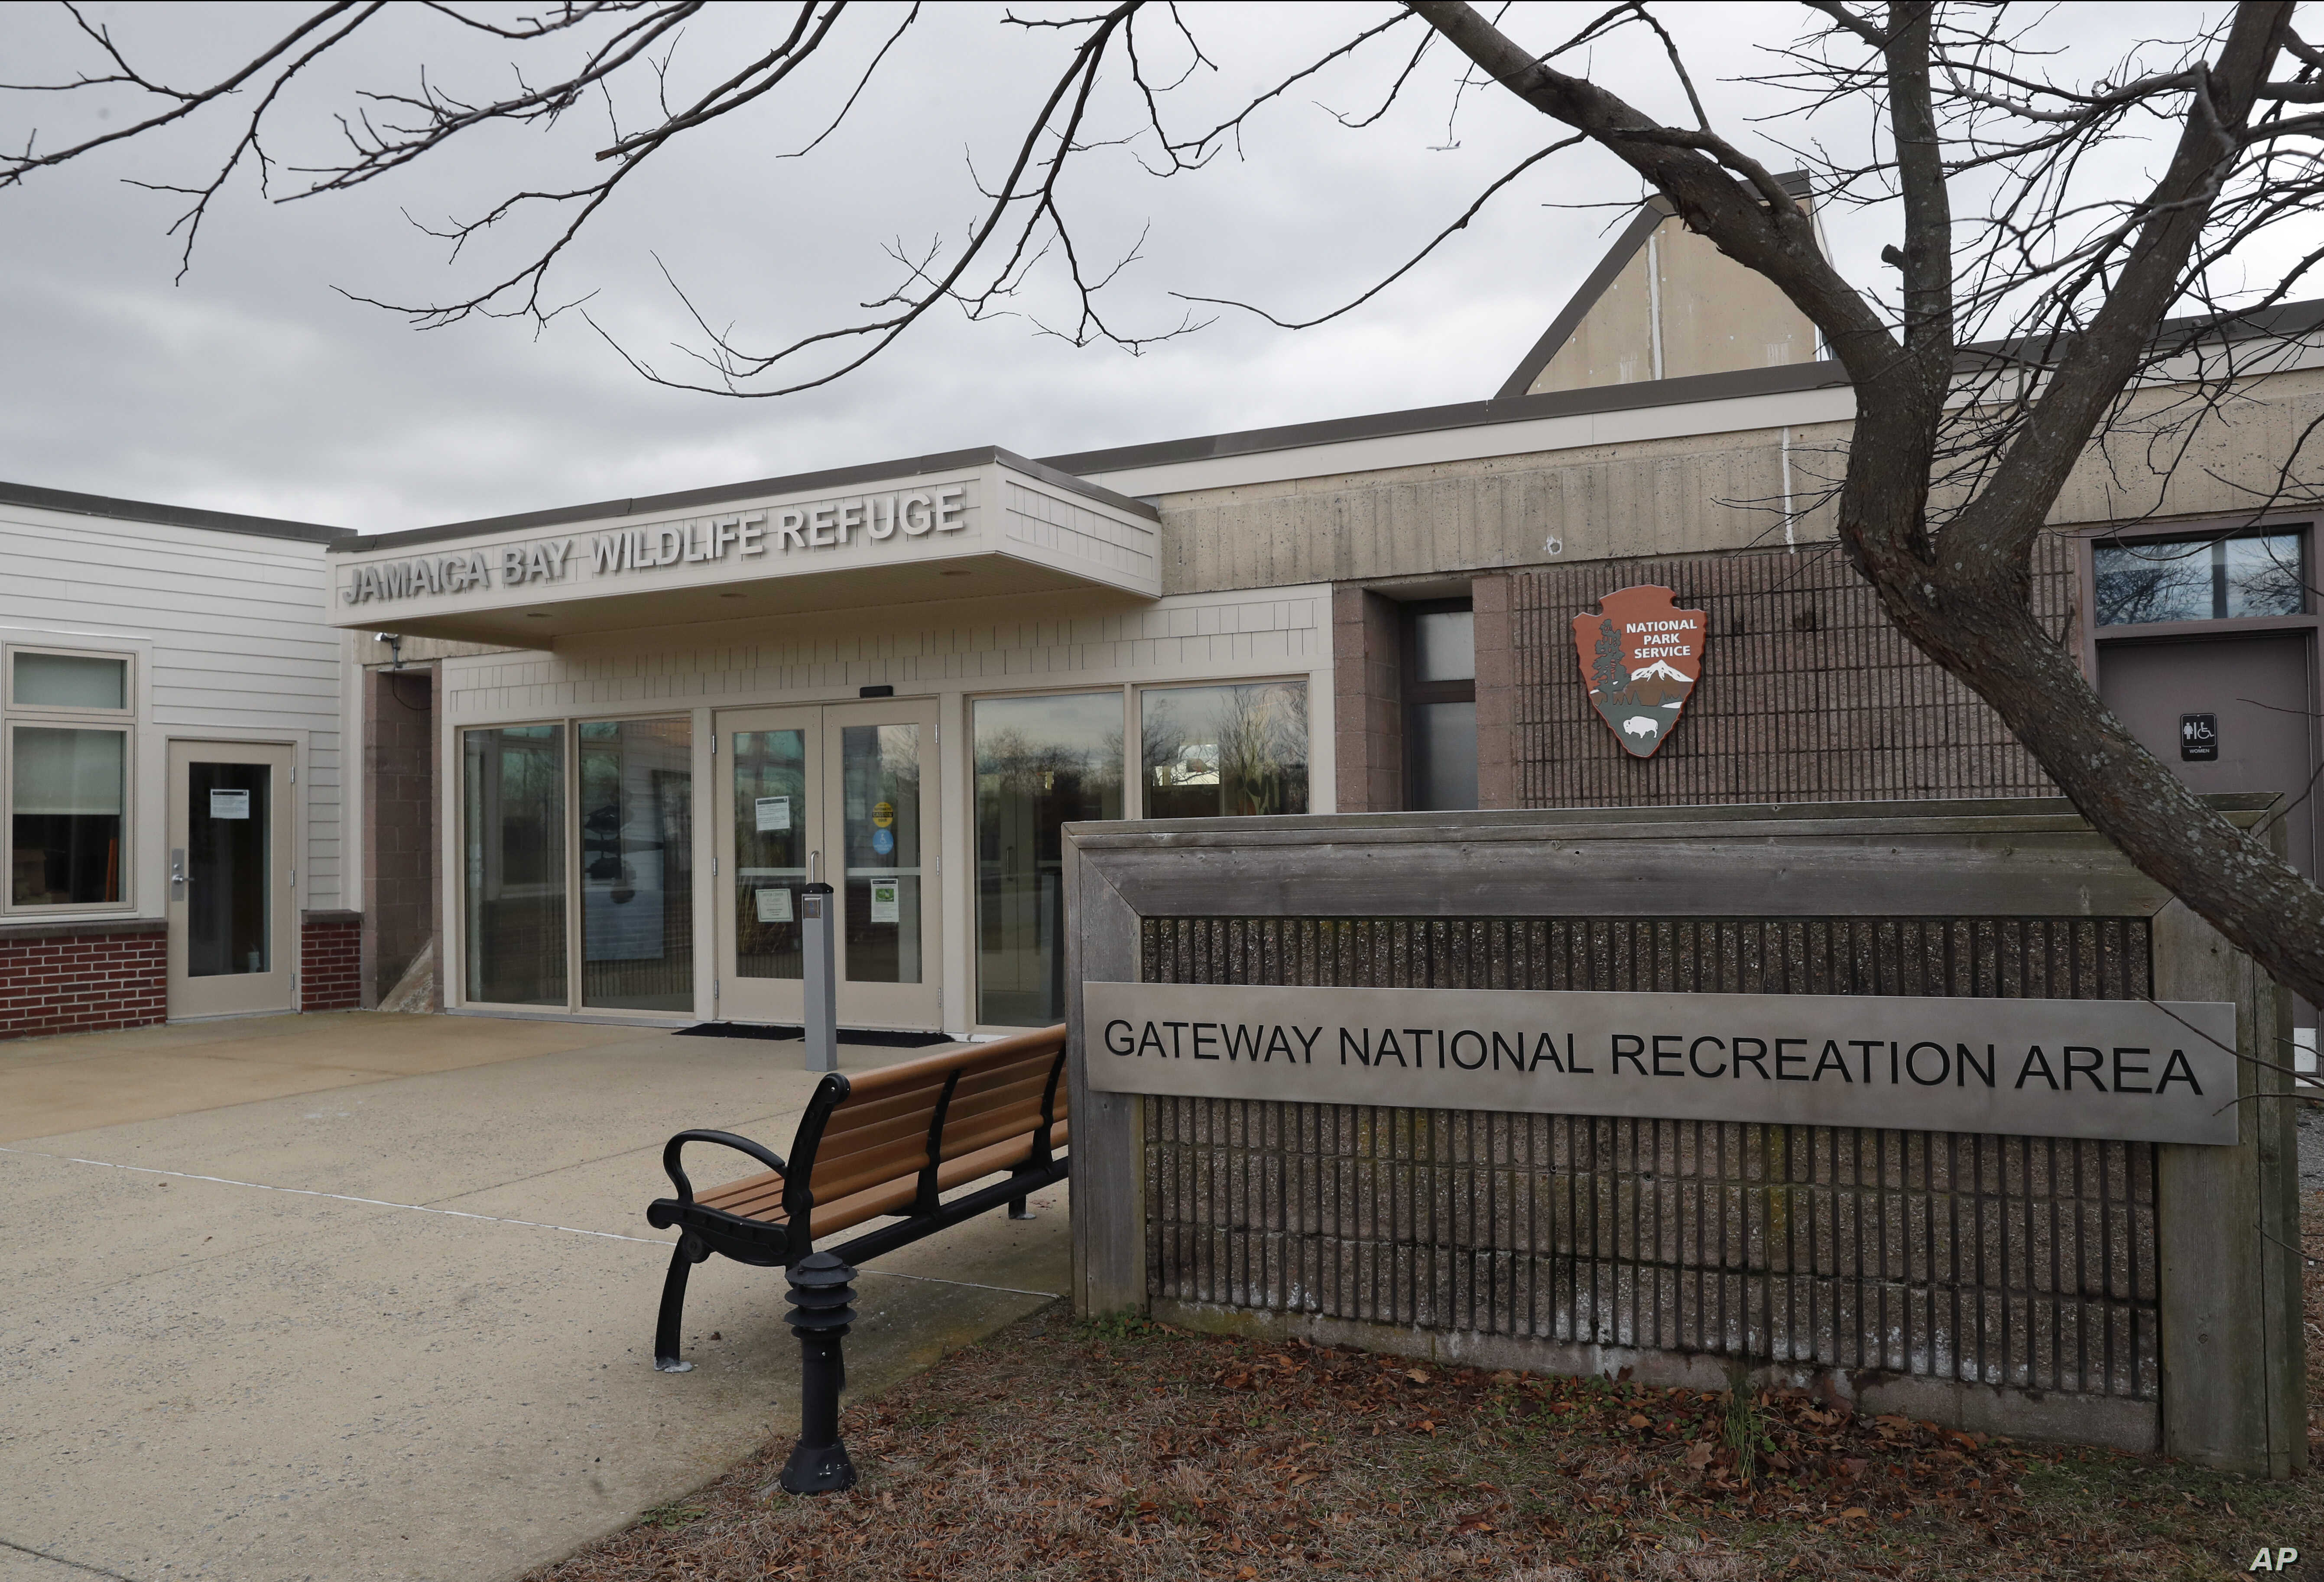 The Visitor's Center at Jamaia Bay Wildlife Refuge, part of the 27,000-acre Gateway National Recreation Area, remained closed, Jan. 3, 2019, in New York, on the 12thh day of a partial government shutdown.